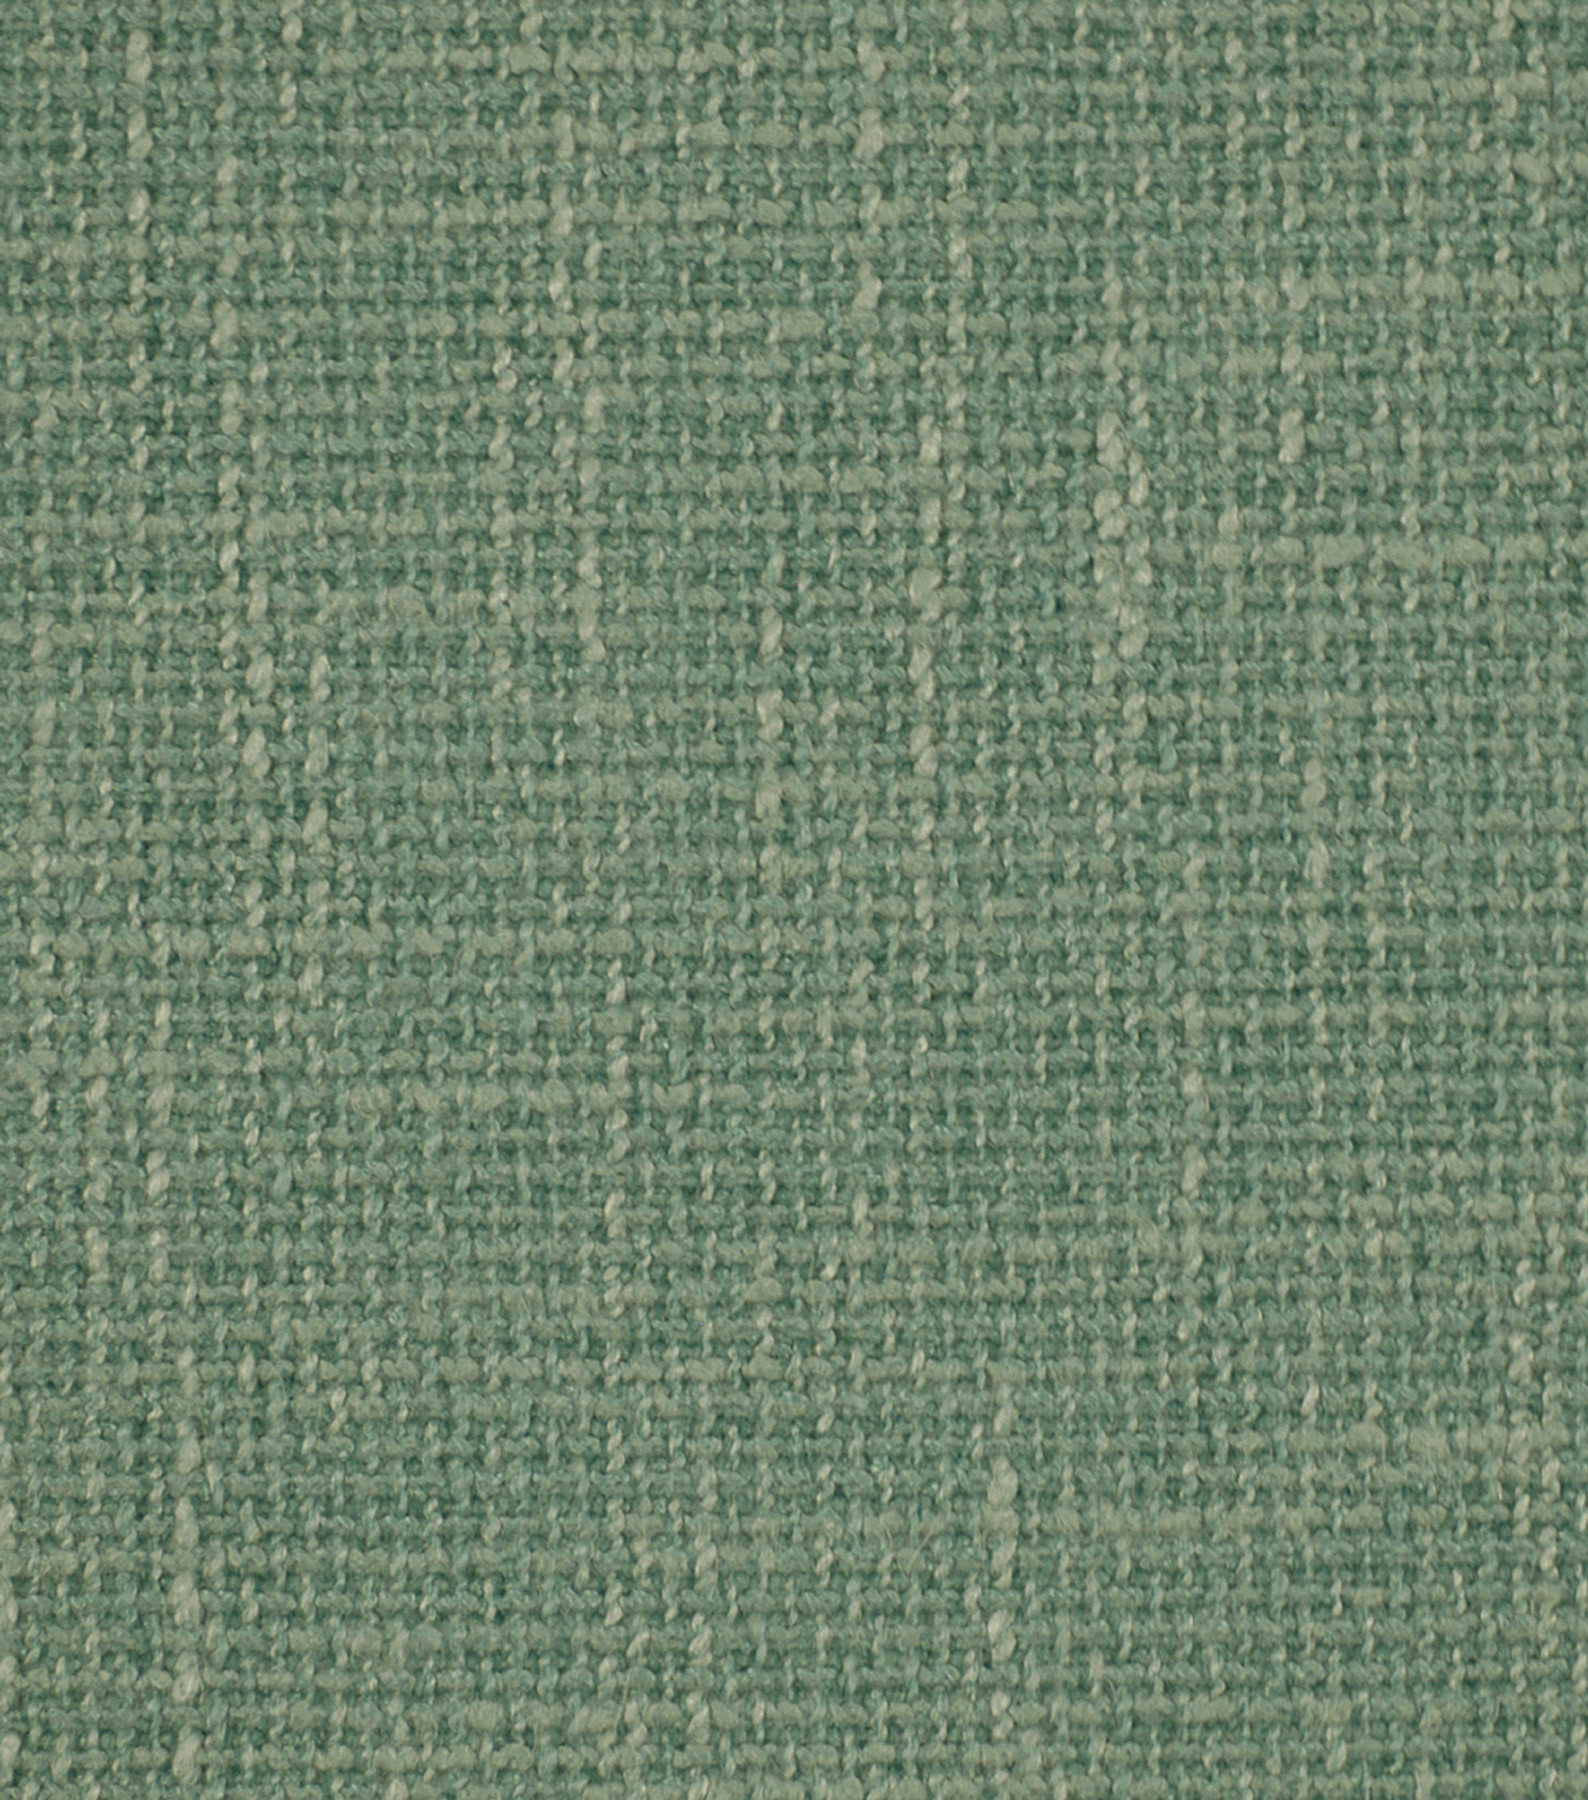 Home Decor 8\u0022x8\u0022 Fabric Swatch--Signature Series Tex Weave Caribbean